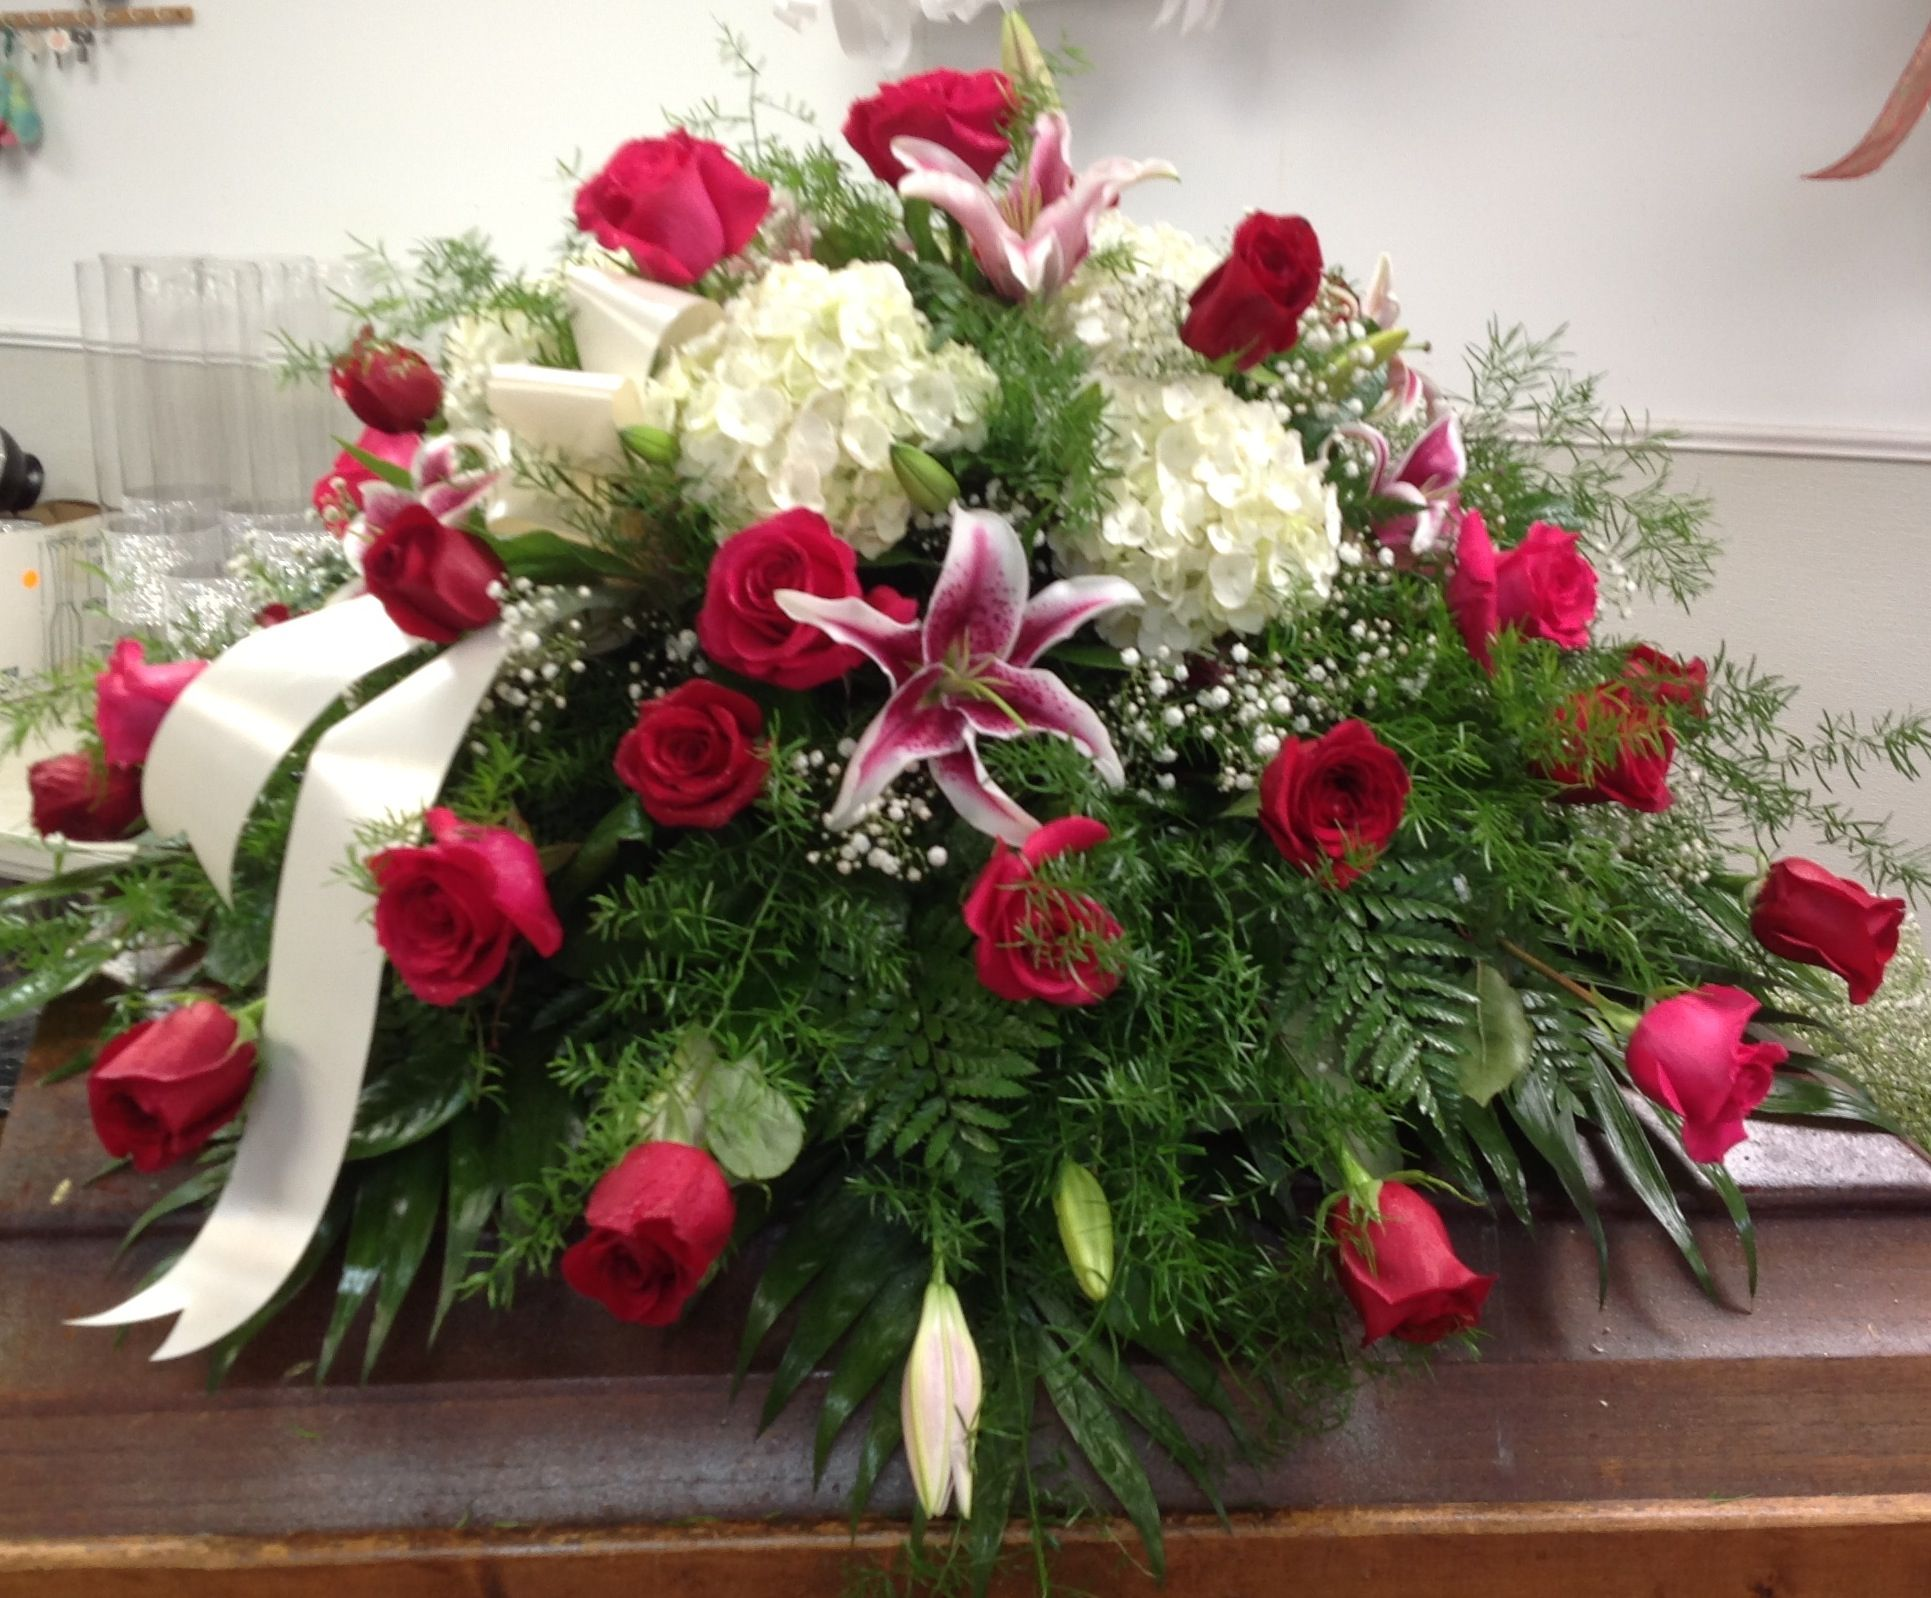 Banner flower house funeral flowers pinterest banners funeral banner flower house izmirmasajfo Image collections